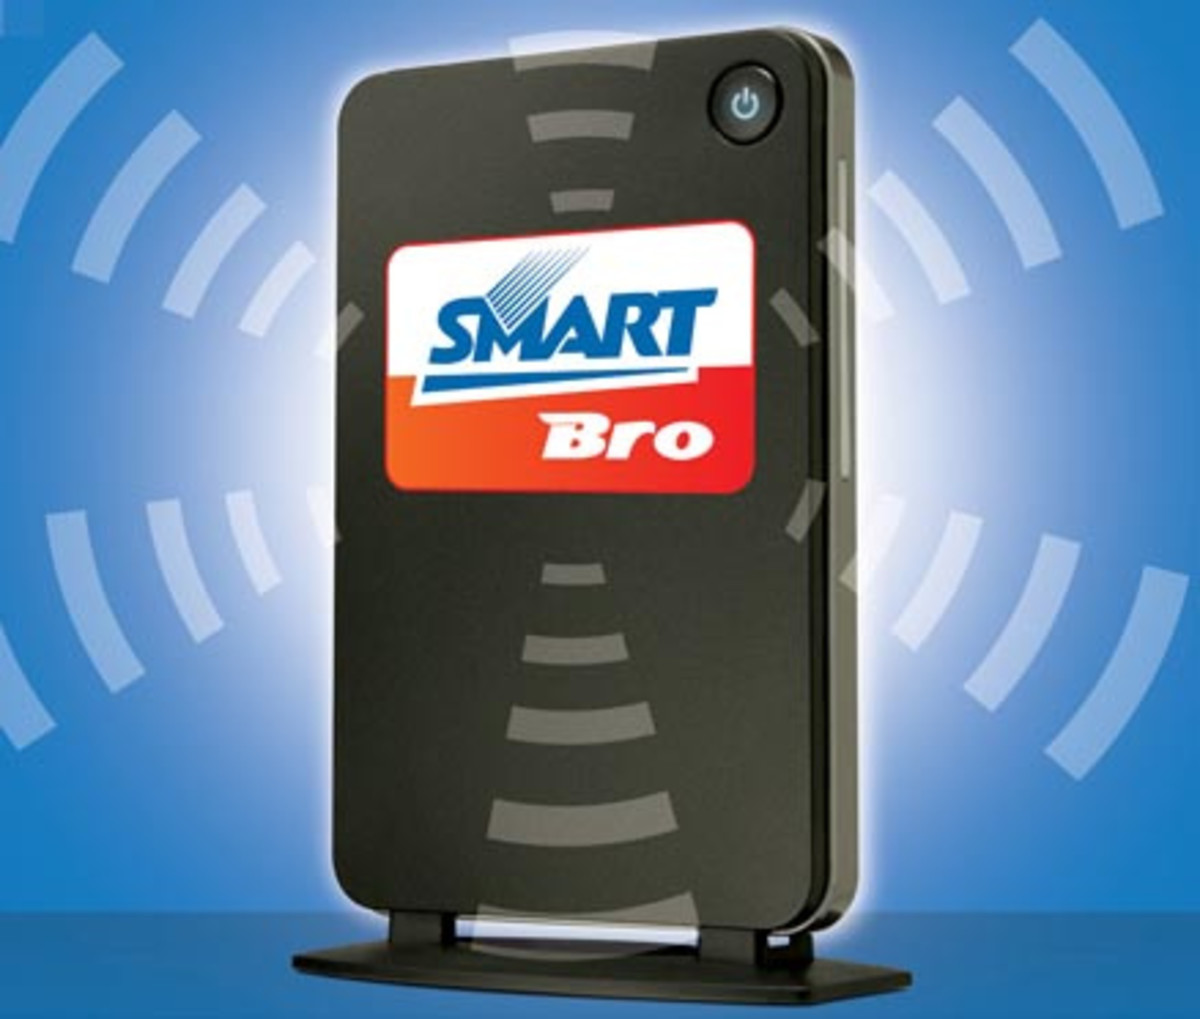 How to Speed up Slow Smartbro Connection | Reboot Your Canopy